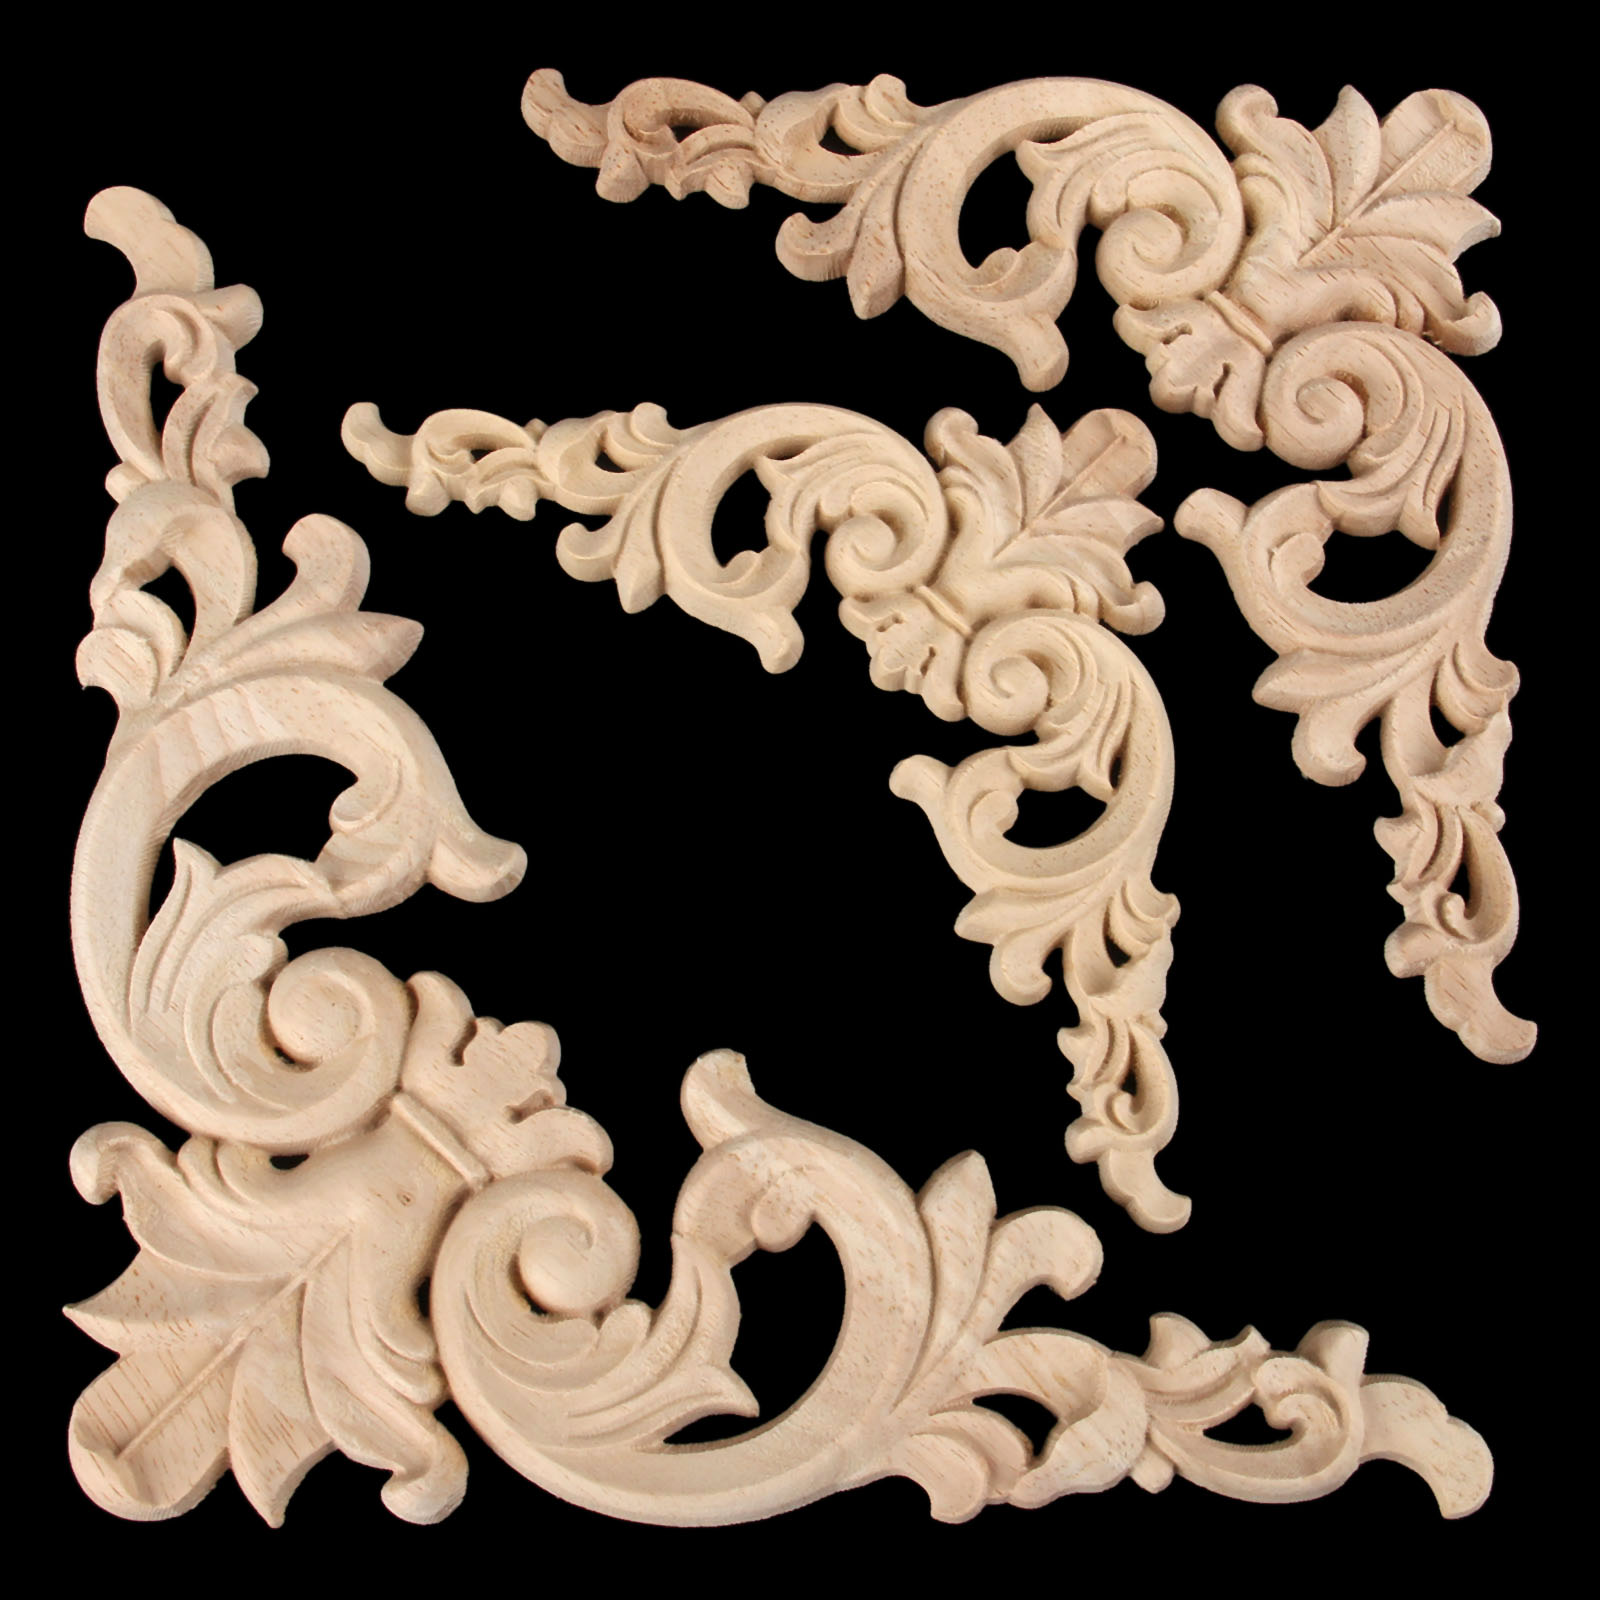 1Pc Woodcarving Decal Corner Applique Frame Door Decorate Wall Doors Furniture Decorative Figurines Wooden Miniatures